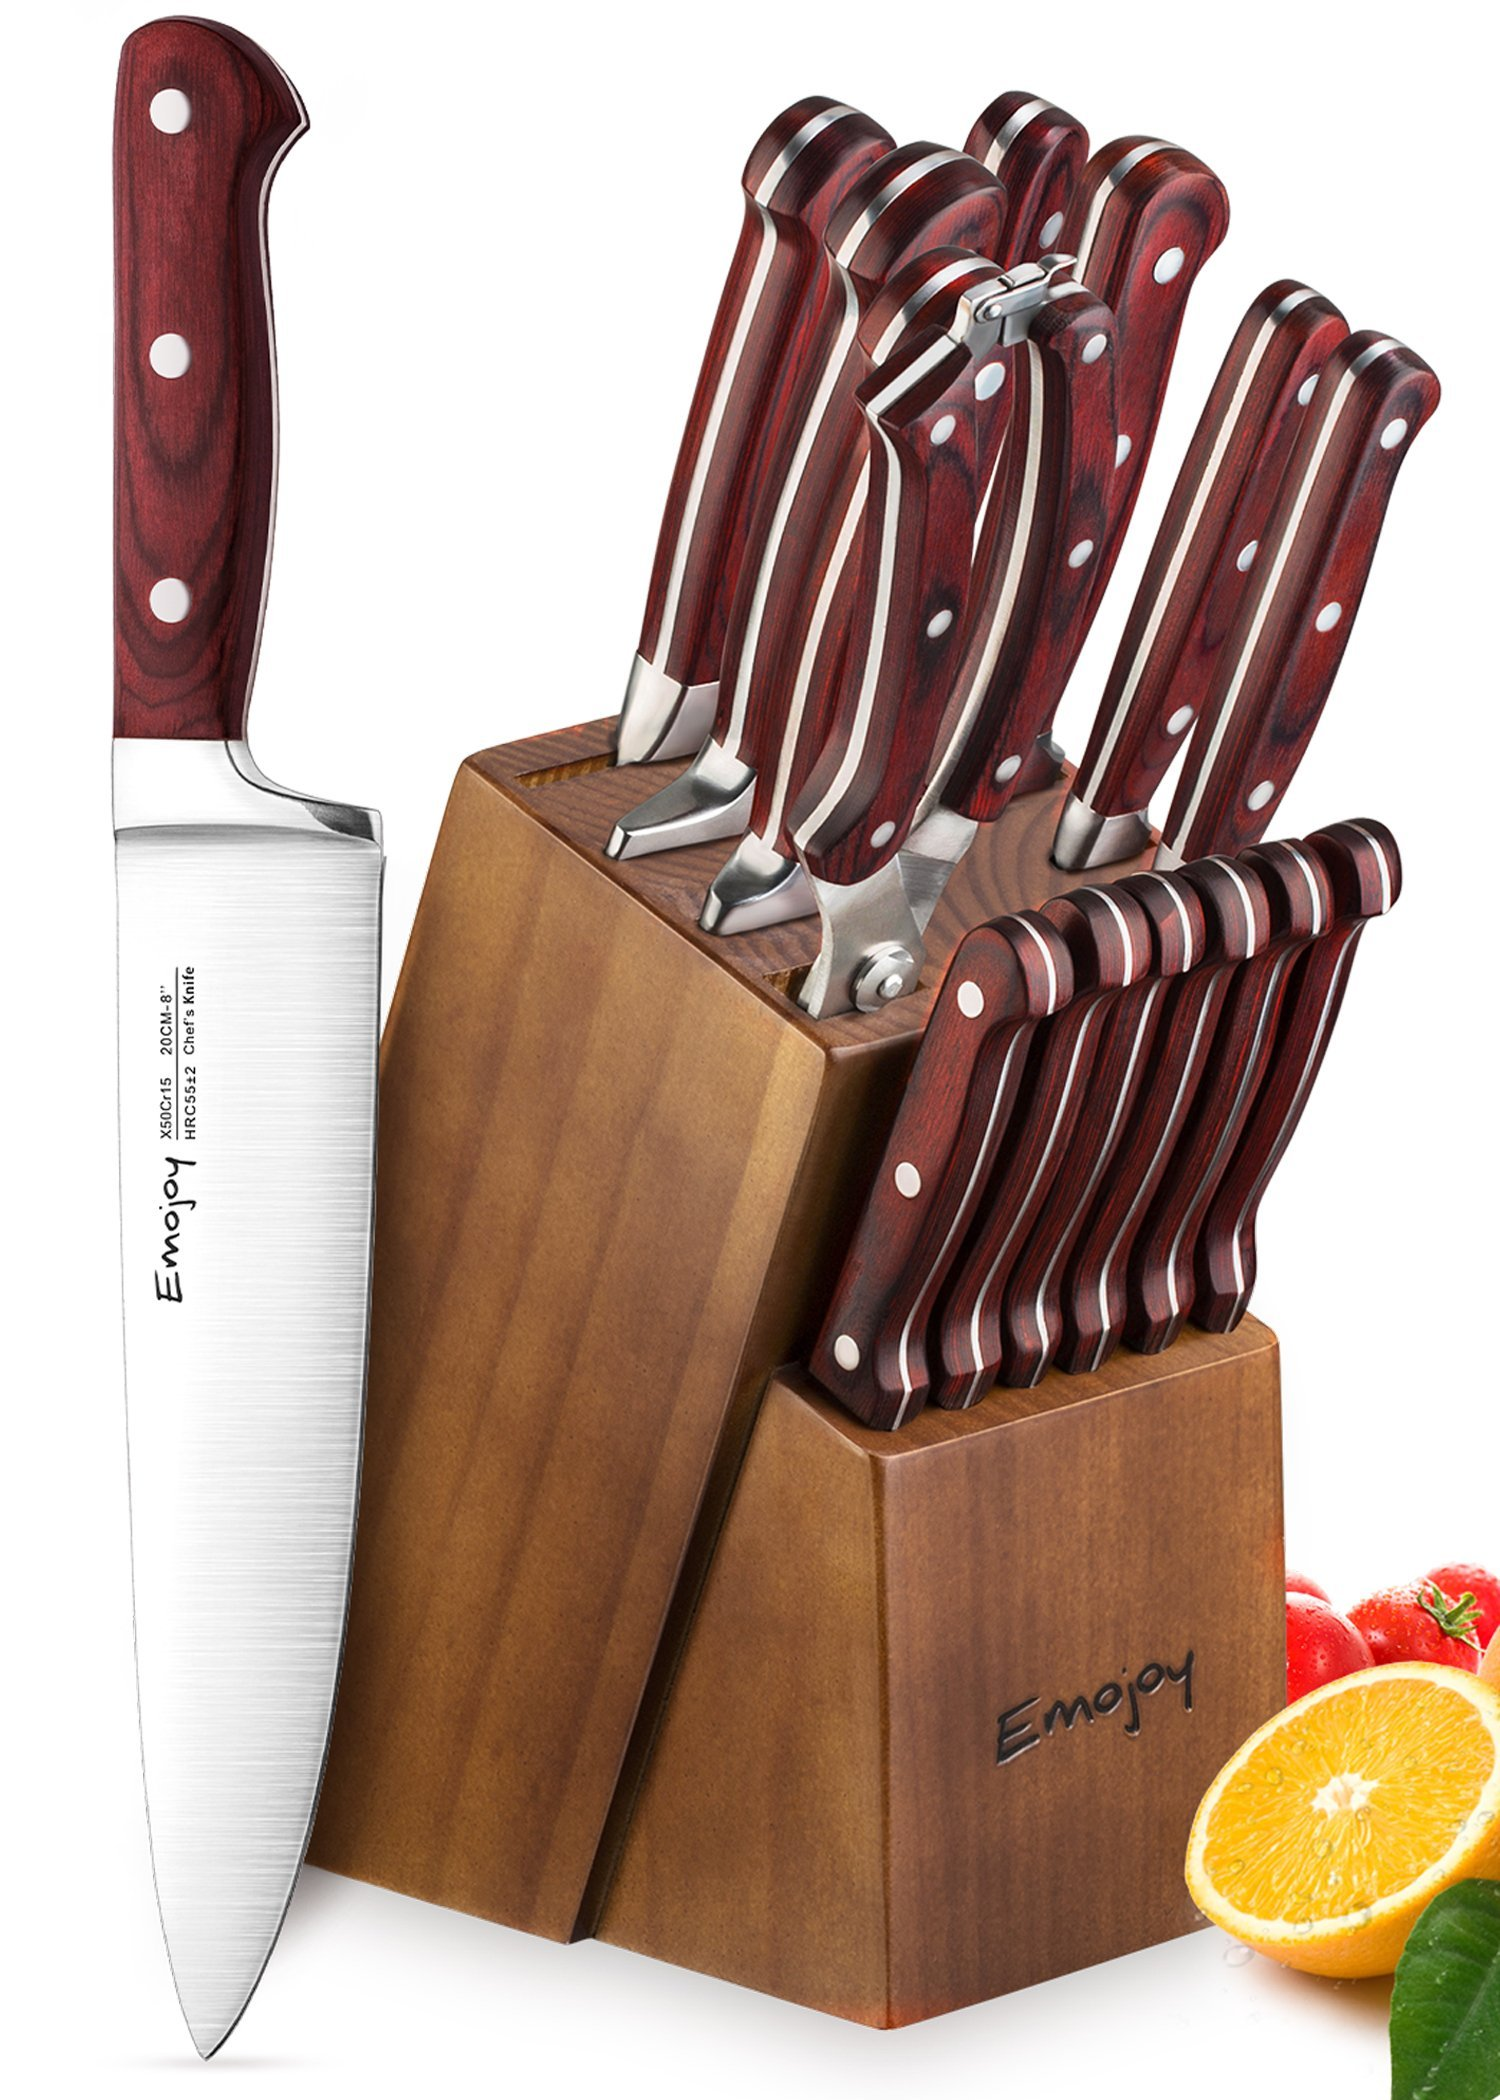 Knife Set, 15-Piece Kitchen Knife Set with Block Wooden, Self Sharpening Manual for Chef Knife Set, German Stainless Steel, Emojoy by Emojoy